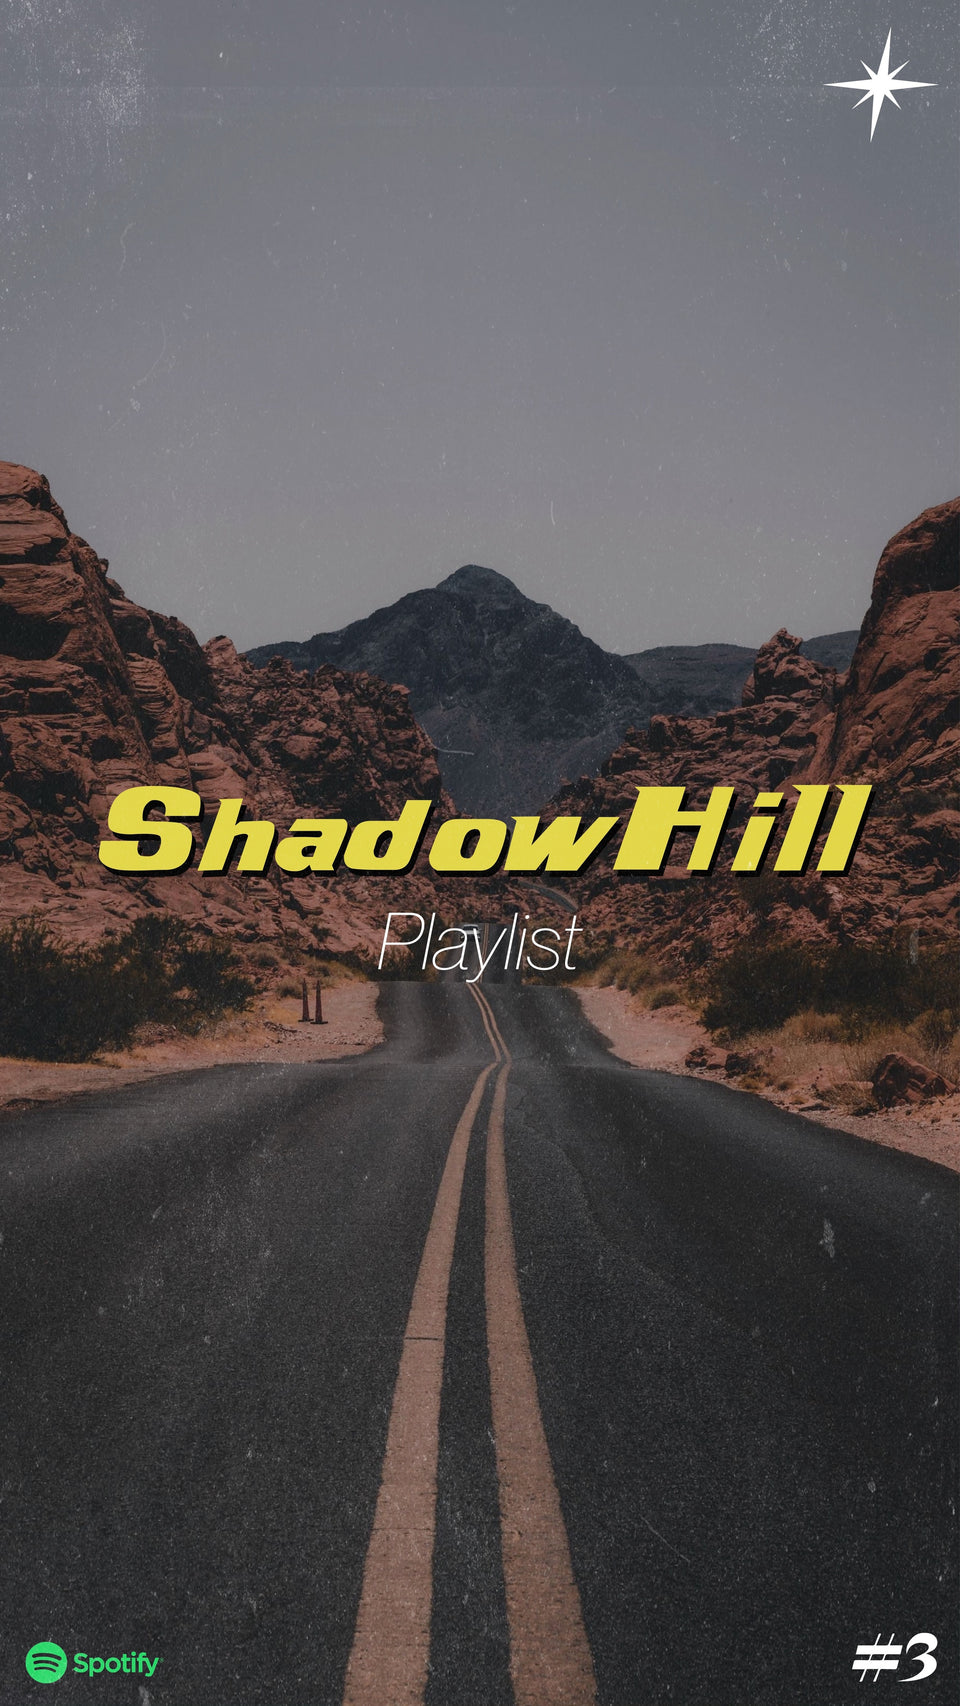 Shadow Hill Playlist